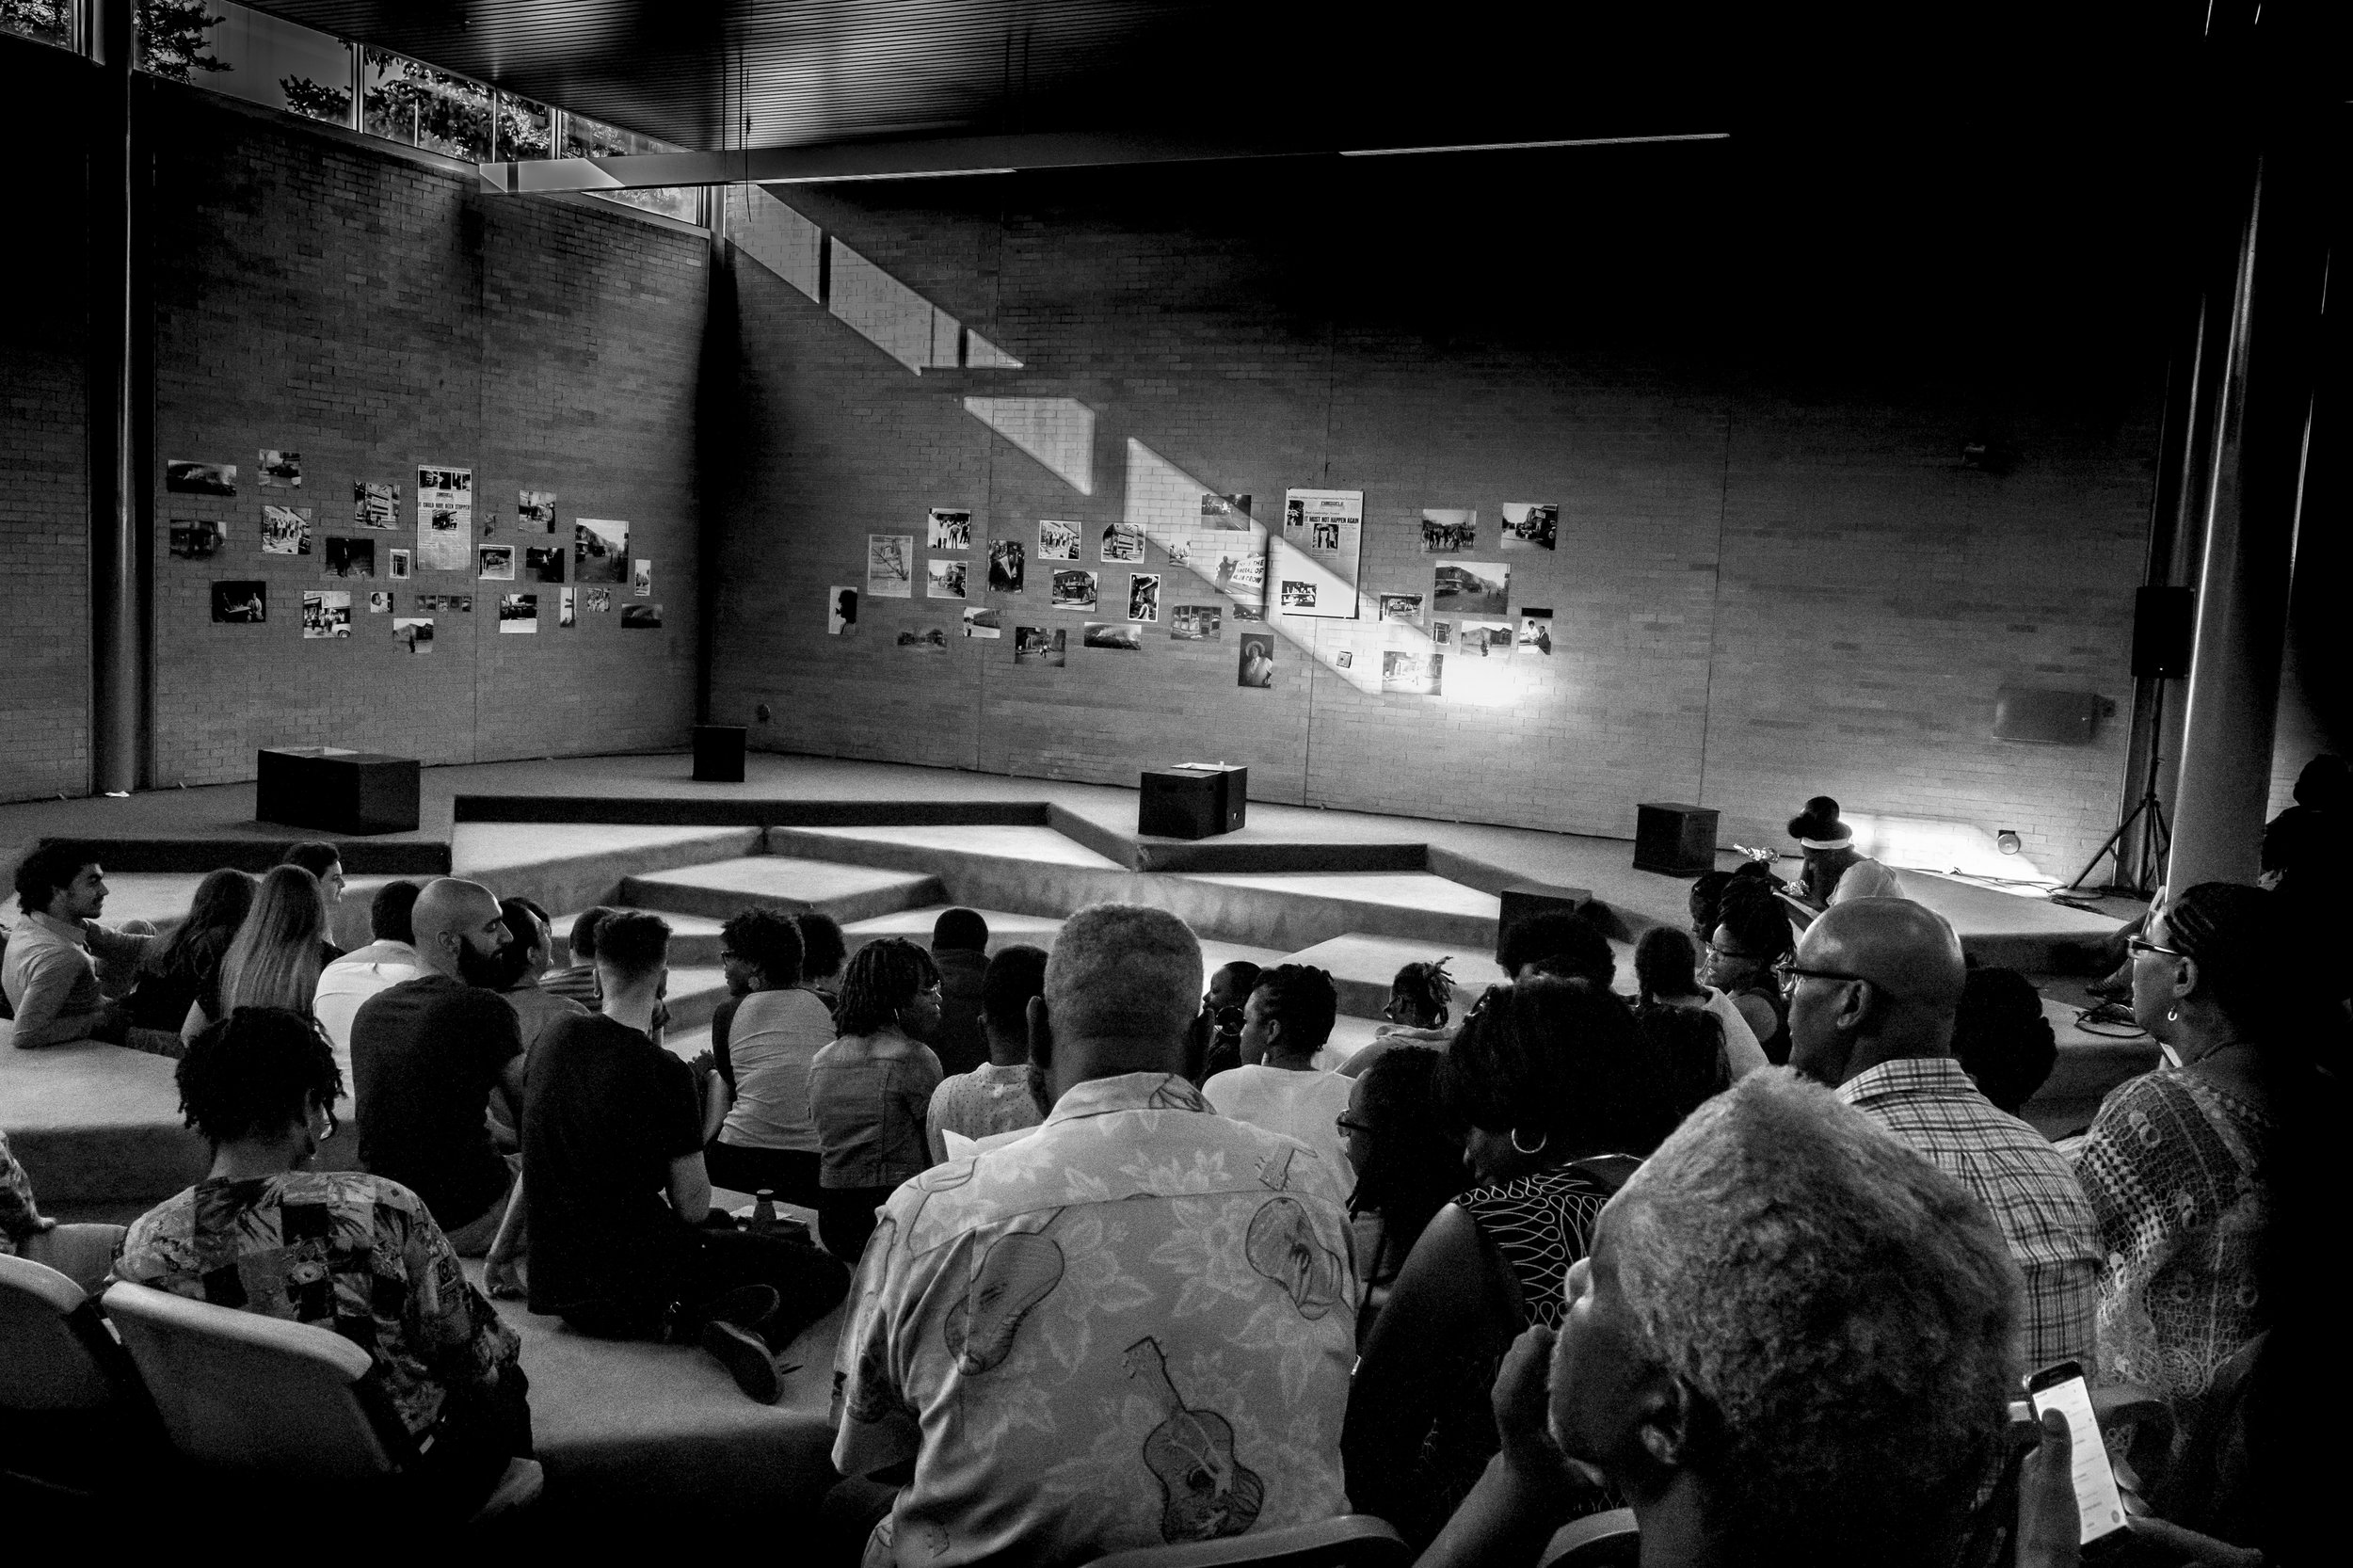 Audience awaits the start of AFTER/LIFE on Friday, July 28, 2017 at the Joseph Walker Williams Recreation Center, Detroit, MI. Photo credit: Mark Sullivan